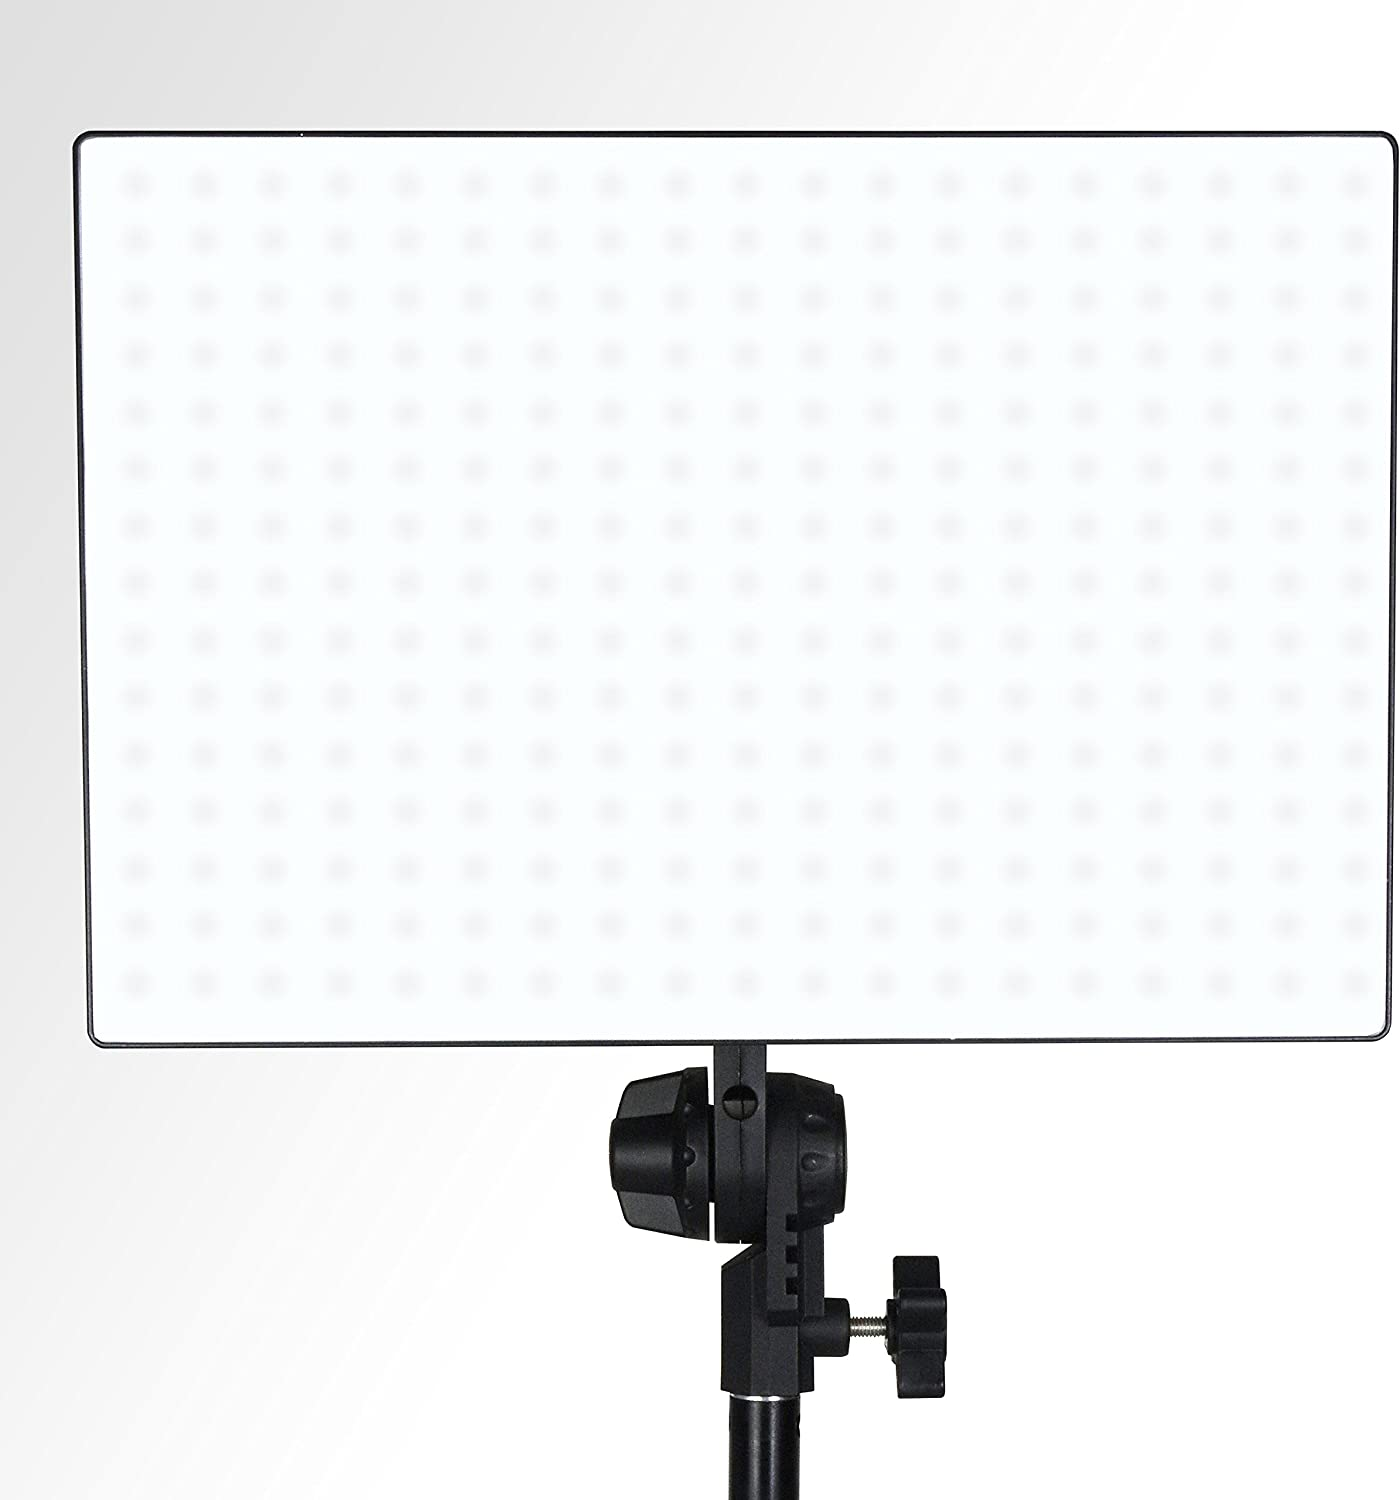 AGG2593 Limostudio 432 Bi-Color LED Dimmable Photo Studio Light Panel with Color Temperature Control and Two Handles for Indoor and Outdoor Photoshoot